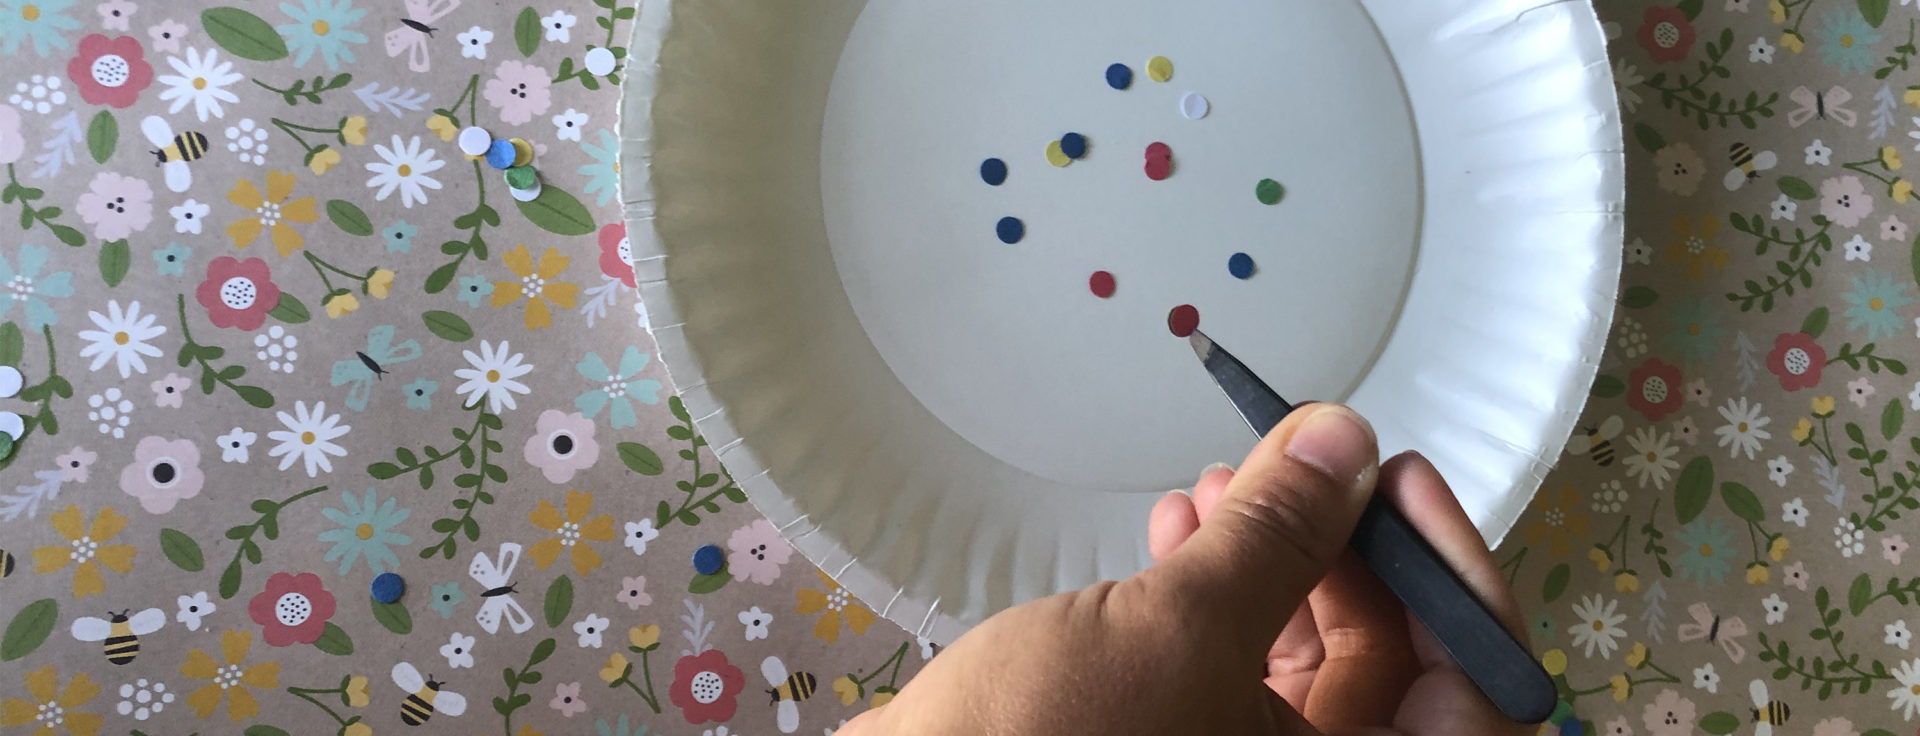 paper plate with dots on a colorful background